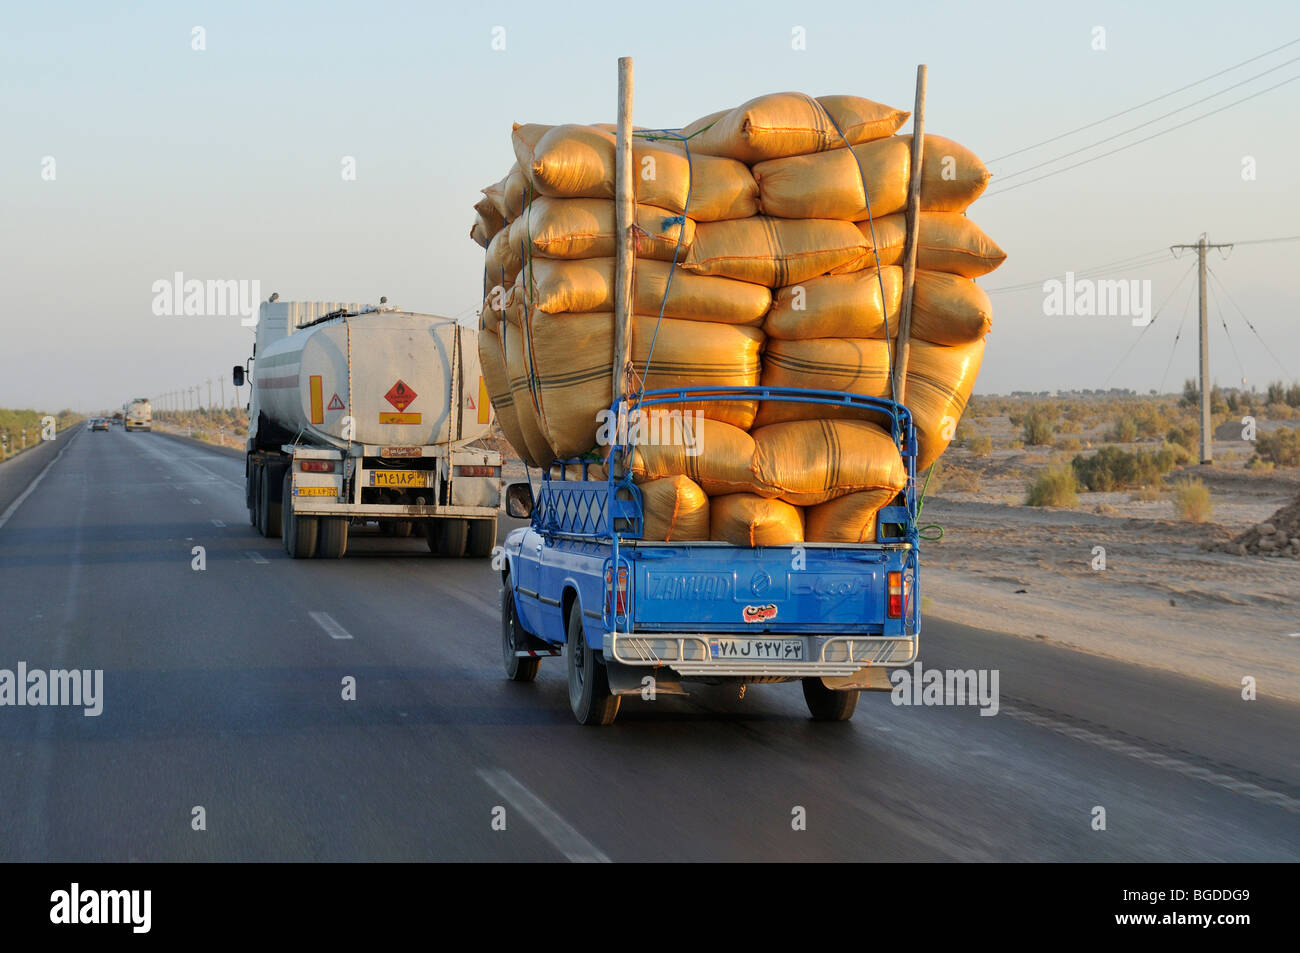 Iranian pickup truck overloaded with sacks on a highway, Iran, Persia, Asia - Stock Image